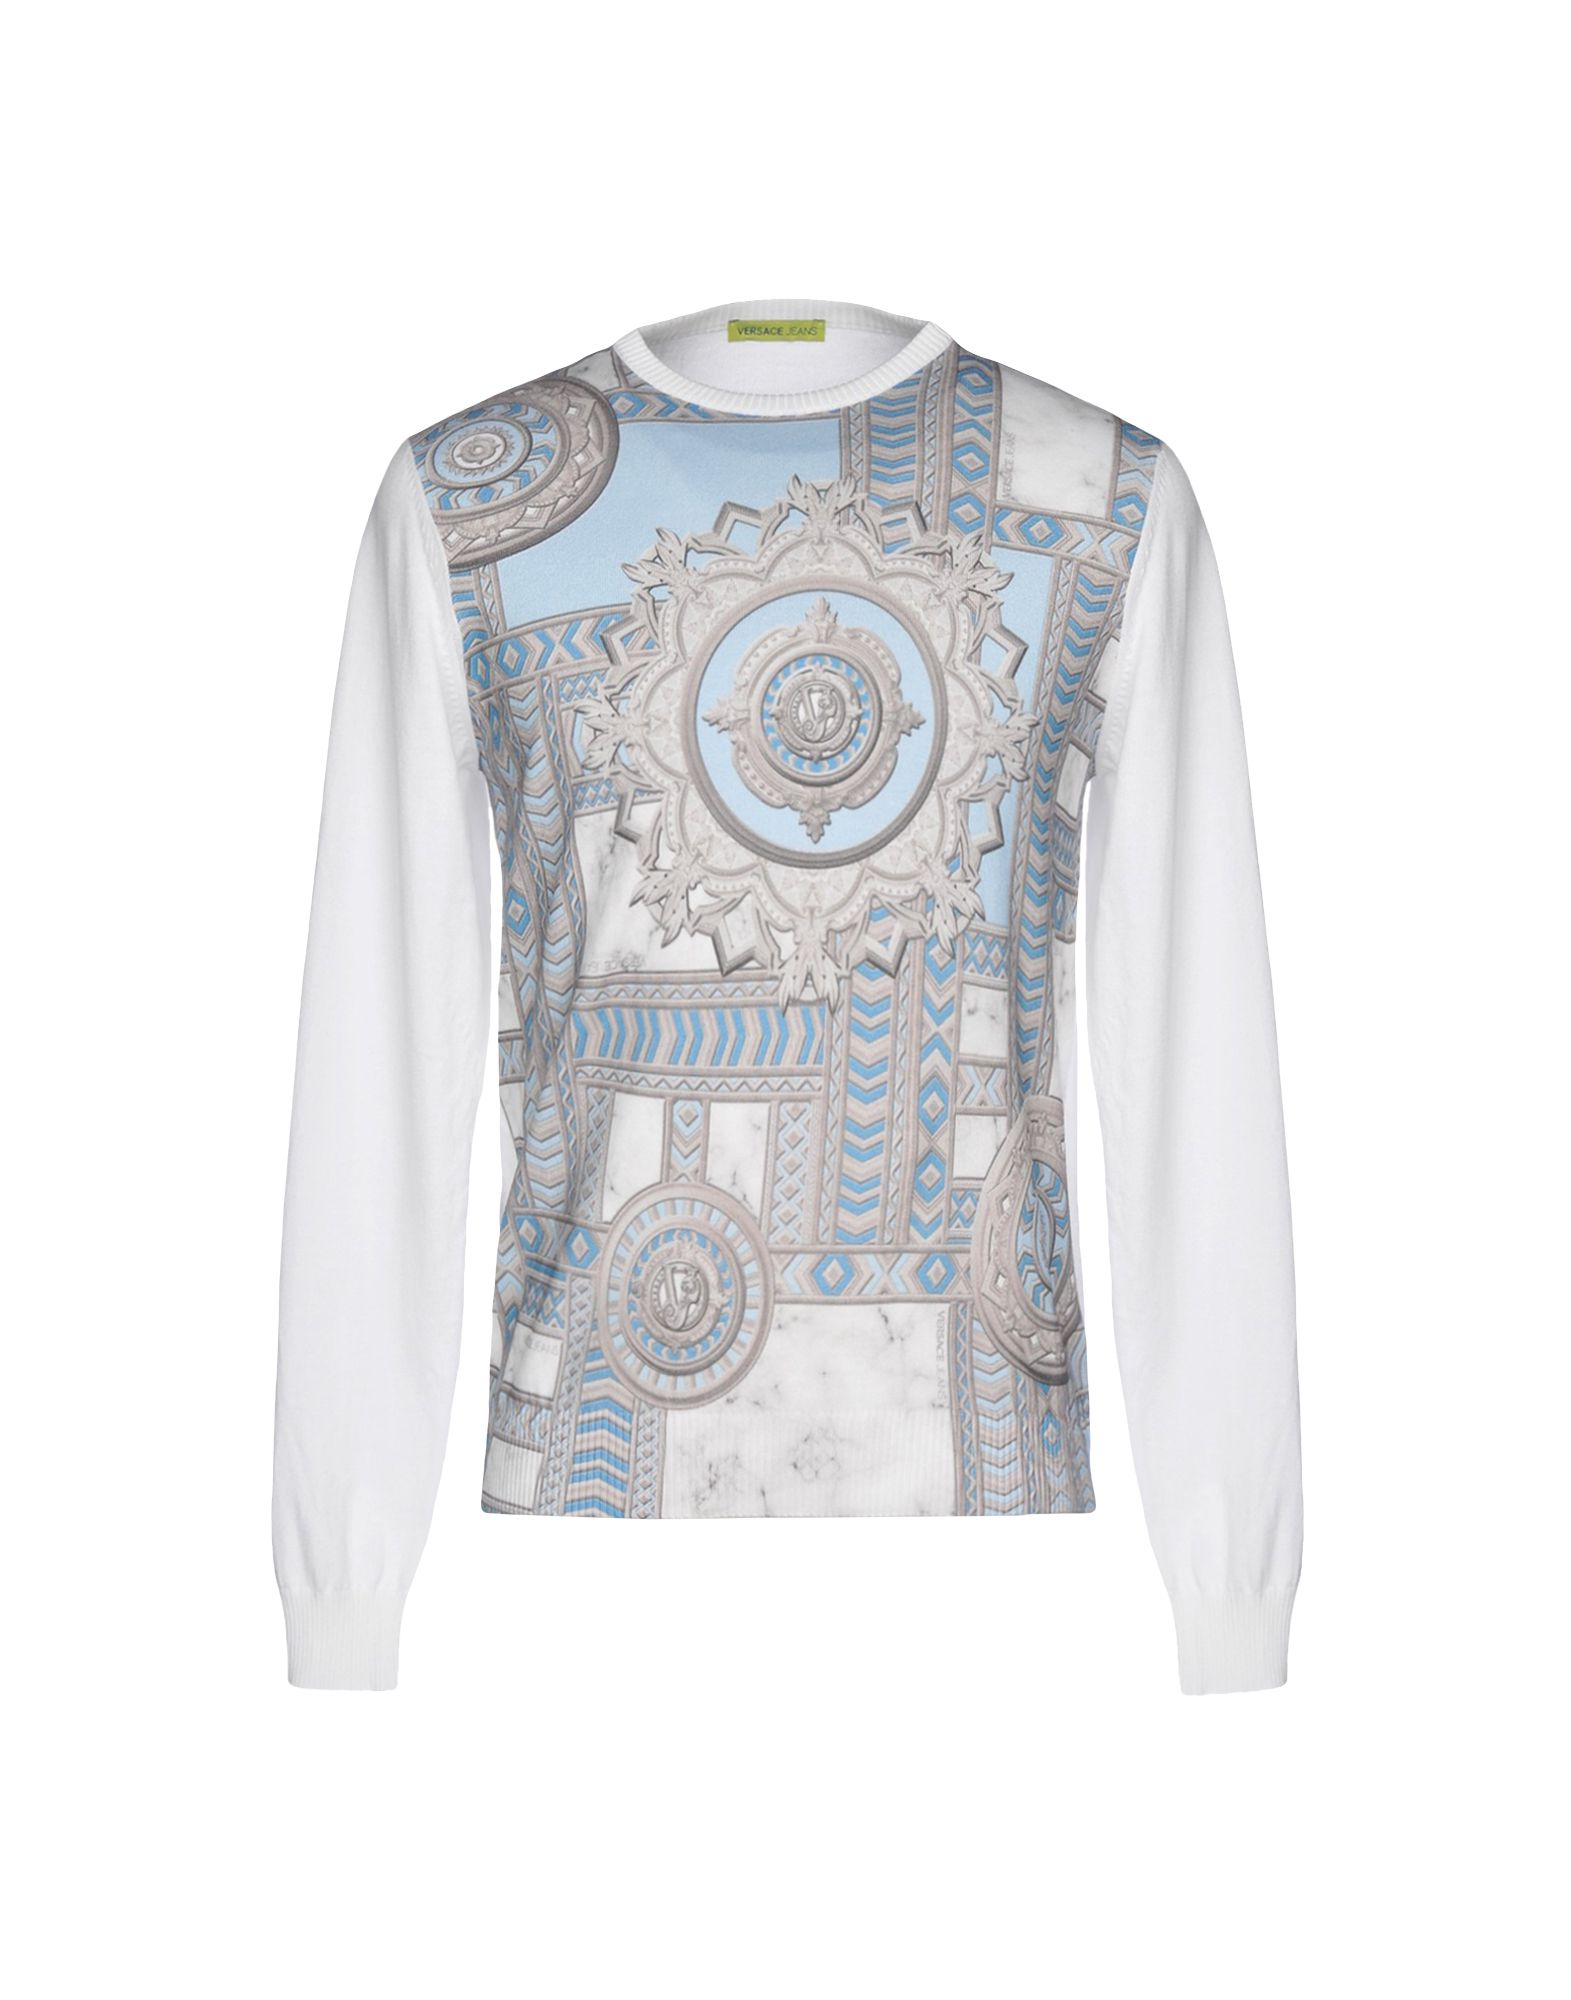 VERSACE JEANS | VERSACE JEANS Sweaters 39901070 | Goxip